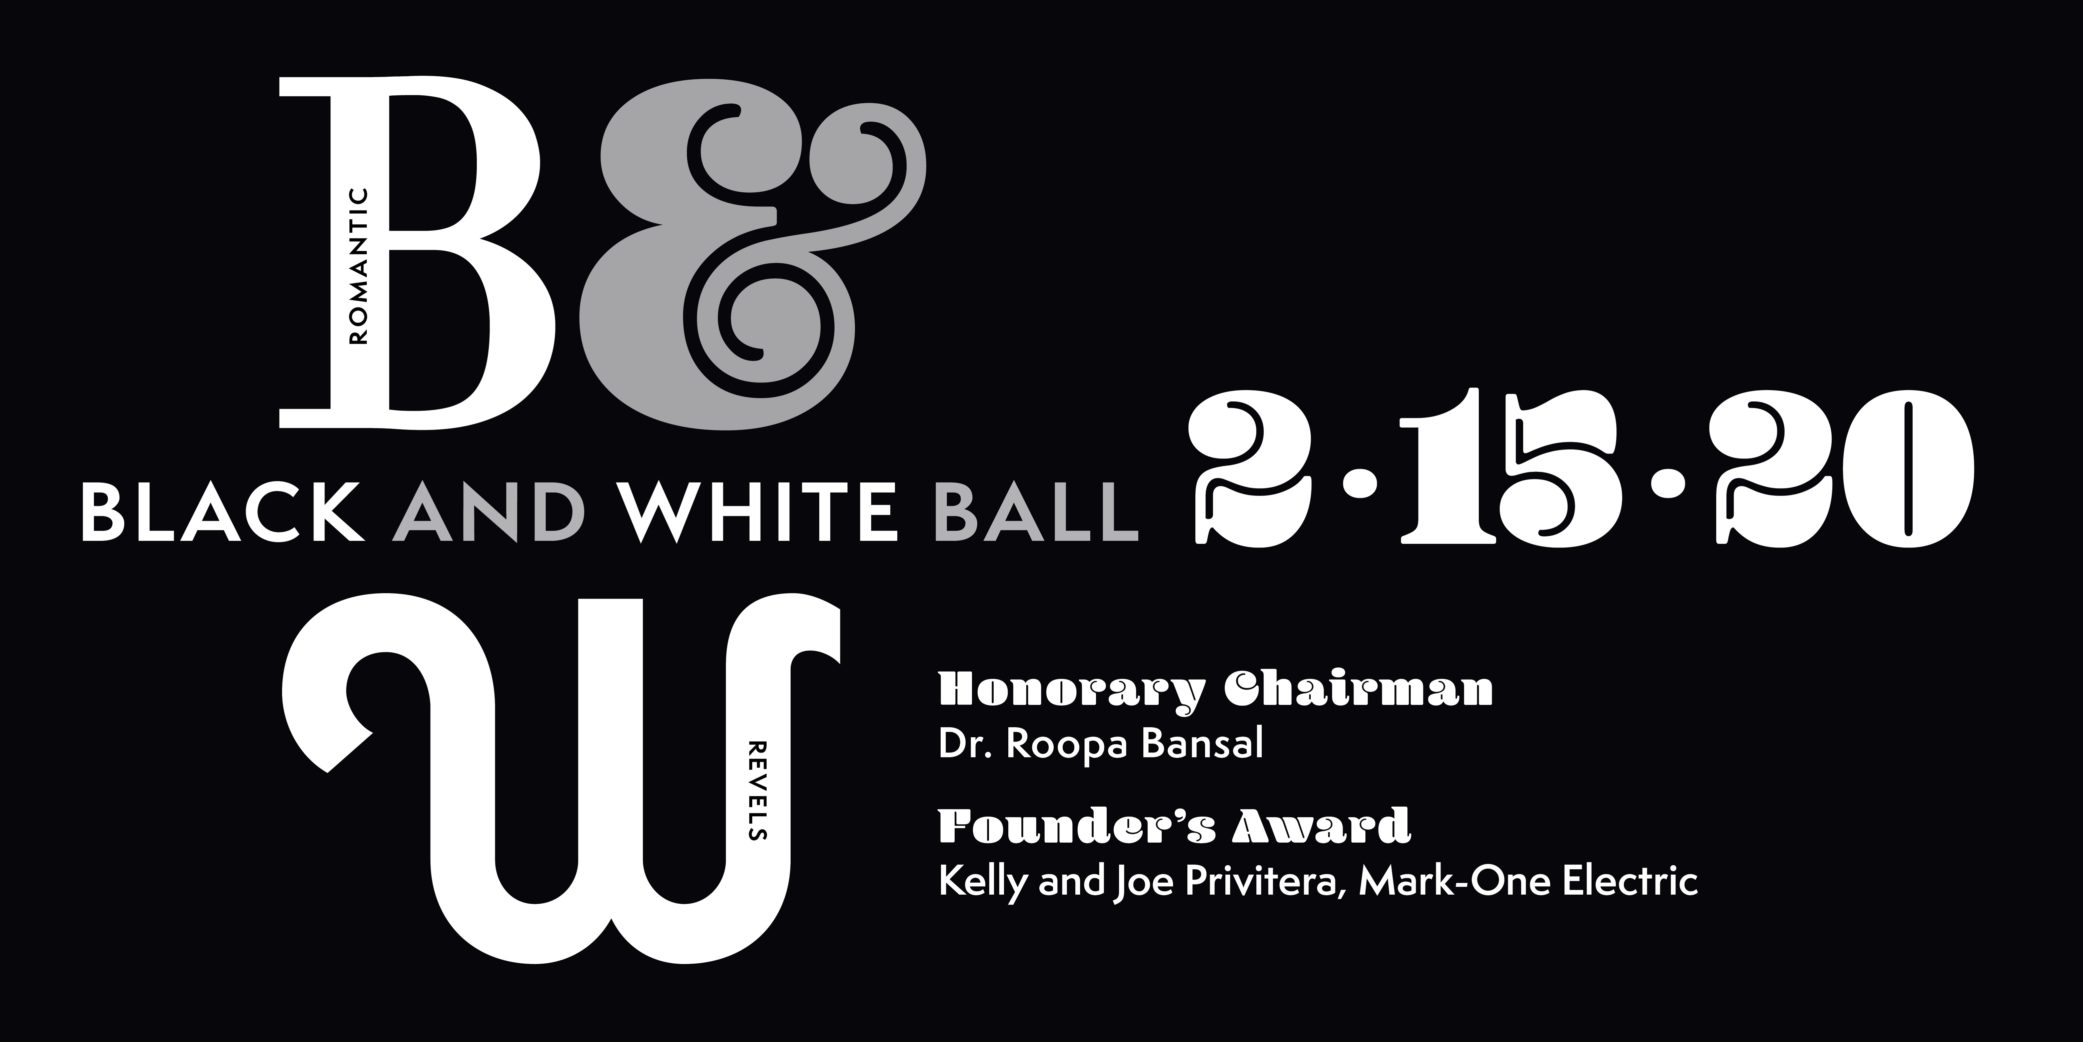 Black and White Ball 2-15-20, Heart of America Shakespeare Festival Romantic Revels, Dr. Roopa Bansal, Kelly and Joe Privitera, Mark-One Electric